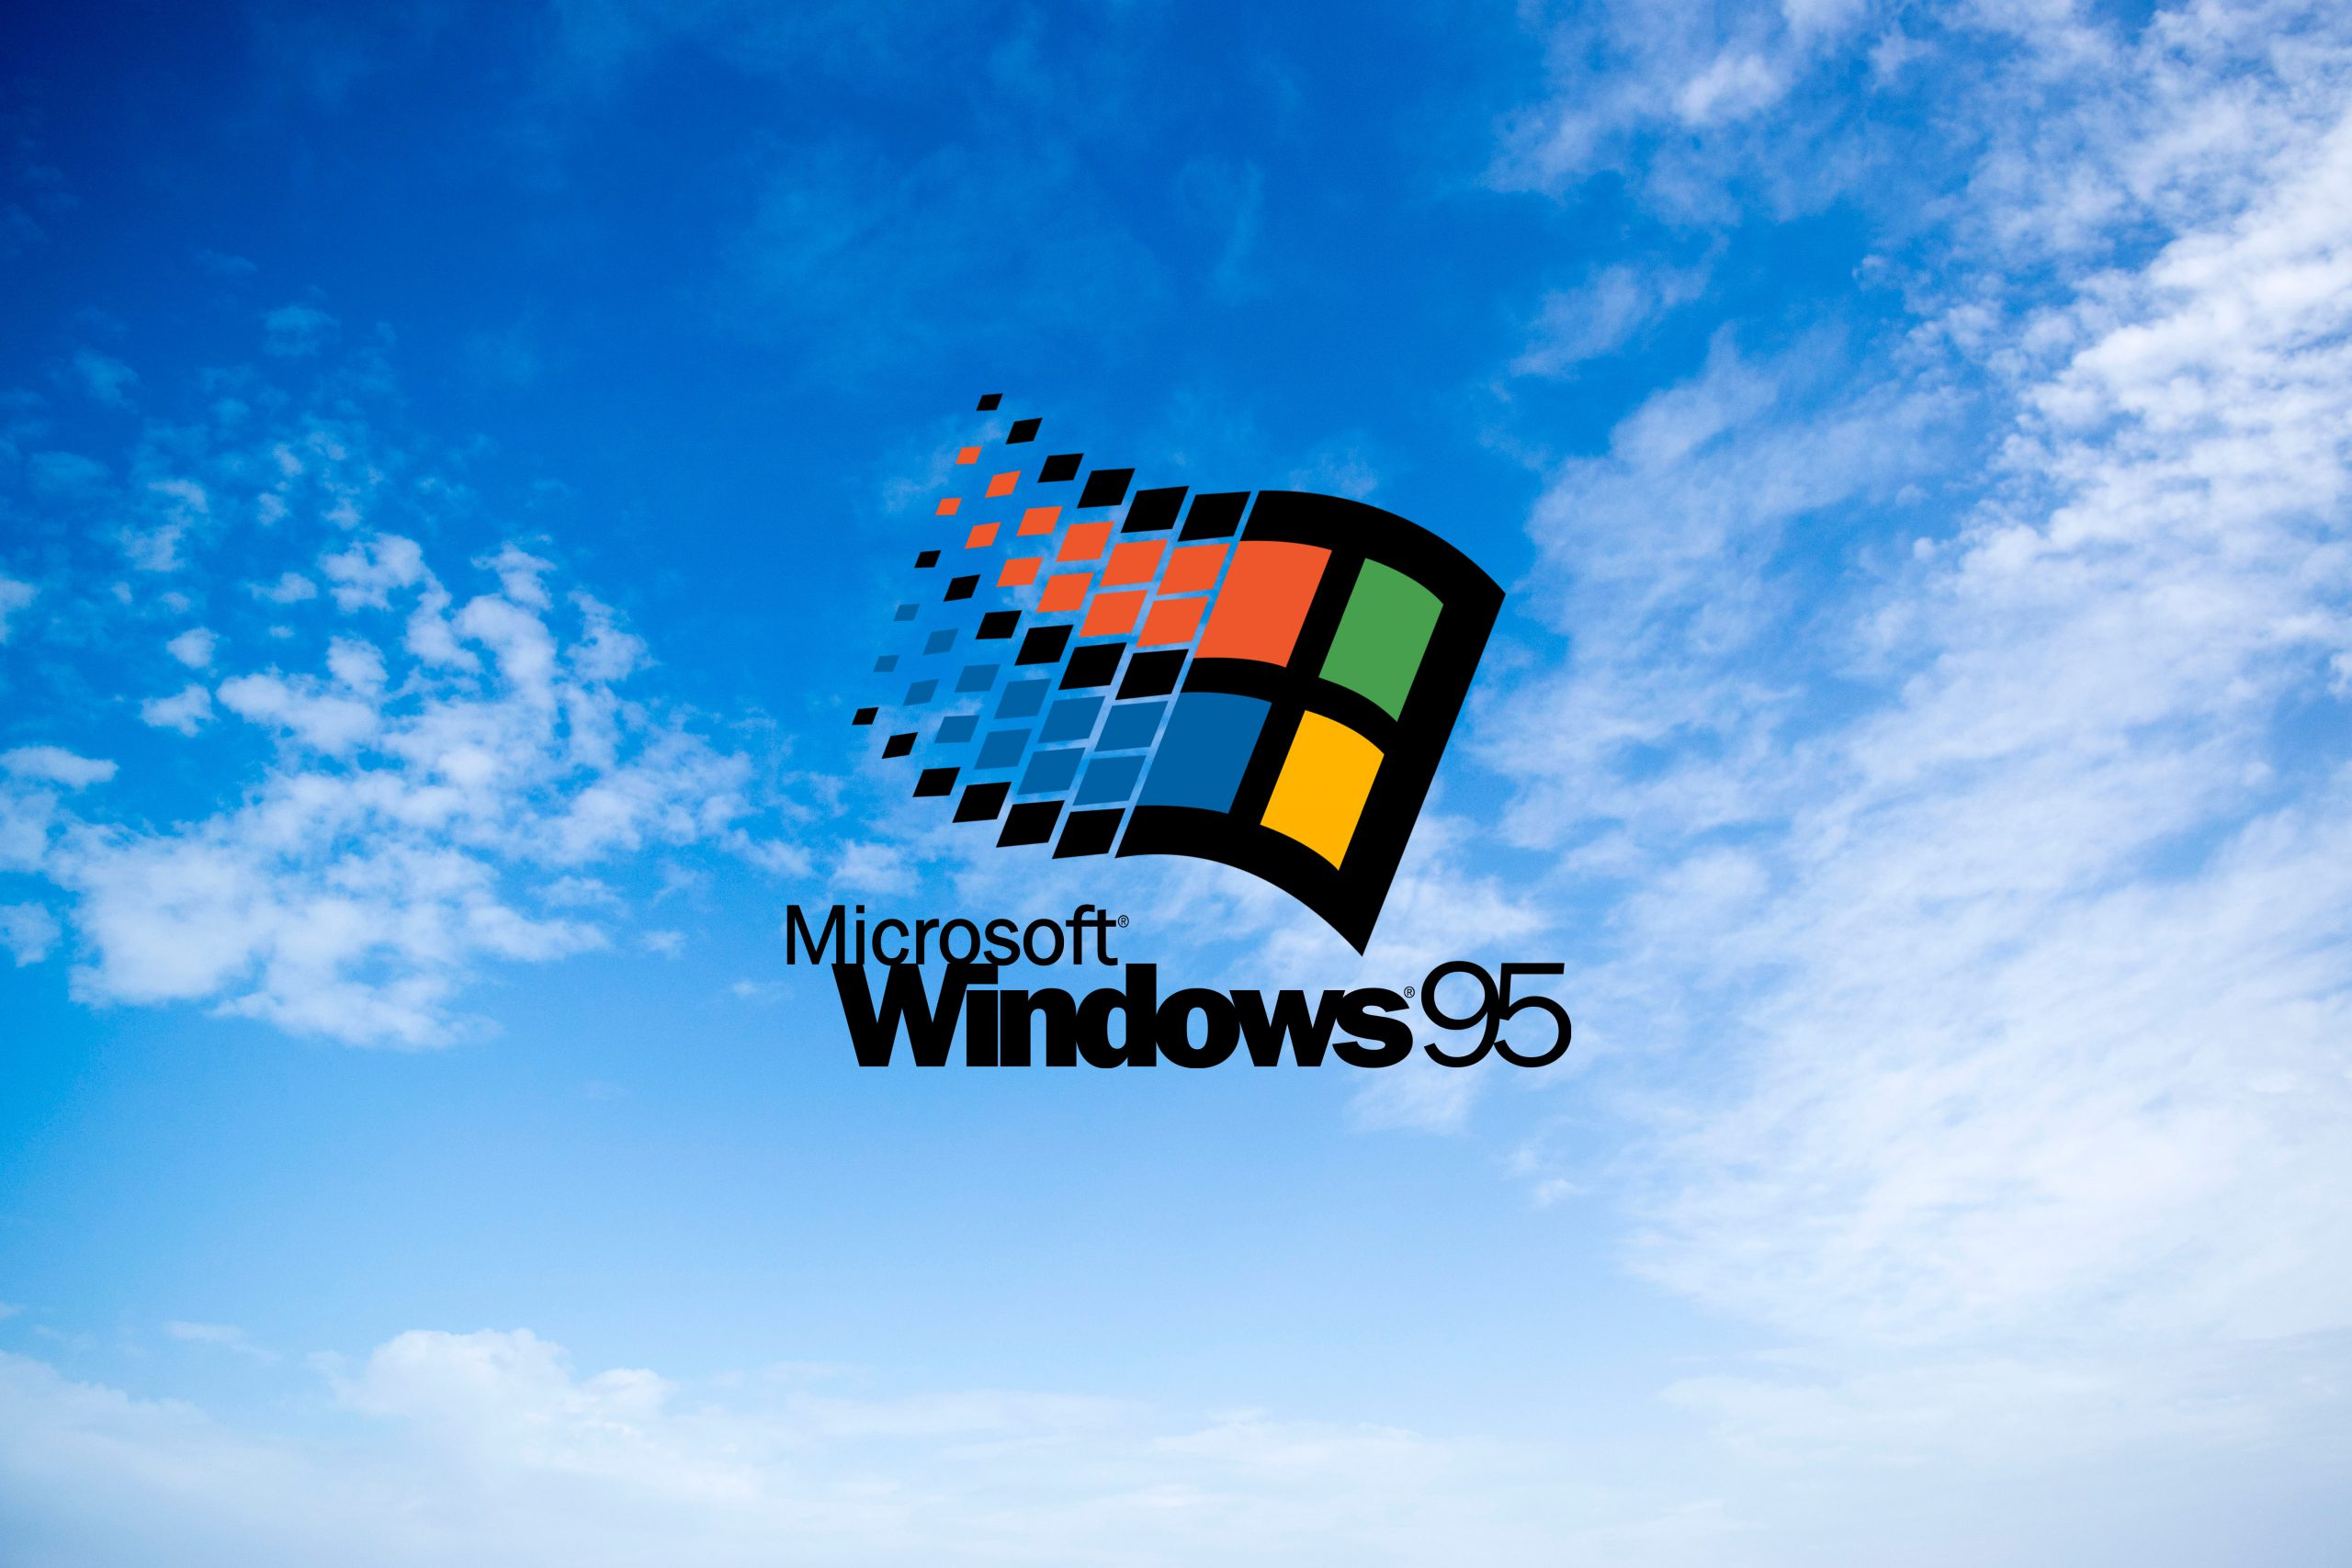 25 years ago today Microsoft launched Windows 95